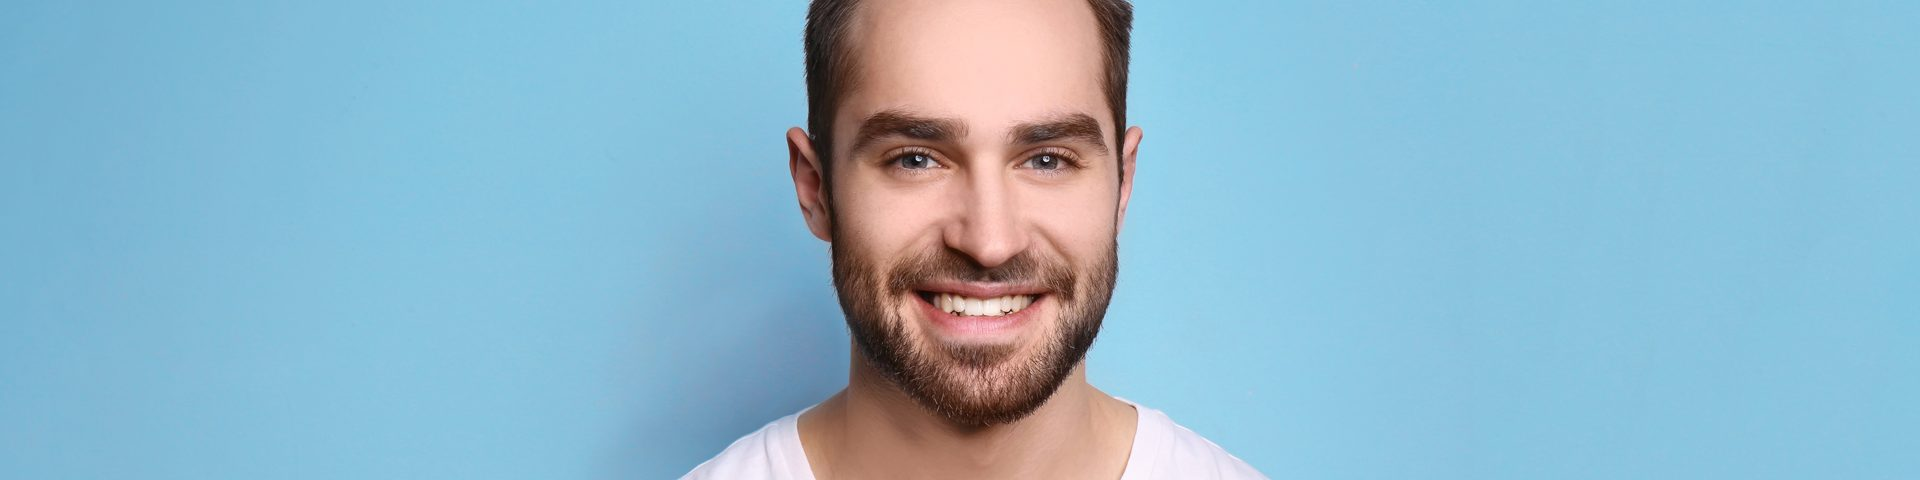 Importance of Teeth Whitening Services in Calgary